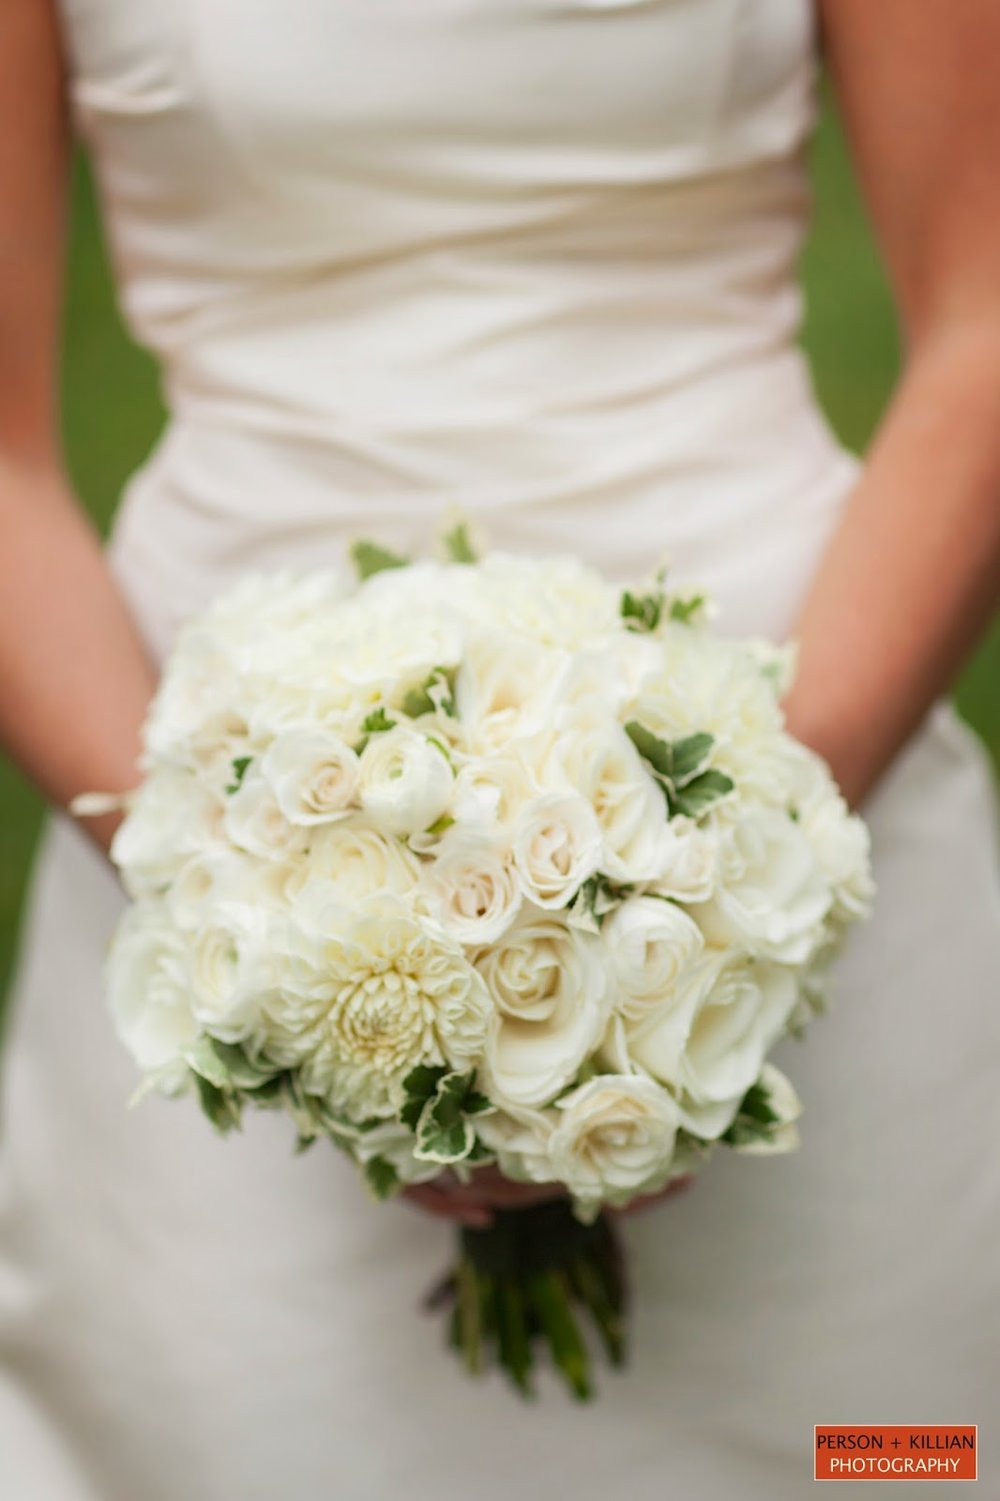 les fleurs : crane estate : person + killian photography : white bridal bouquet : dahlia, roses, ranunculus, variegated foliage